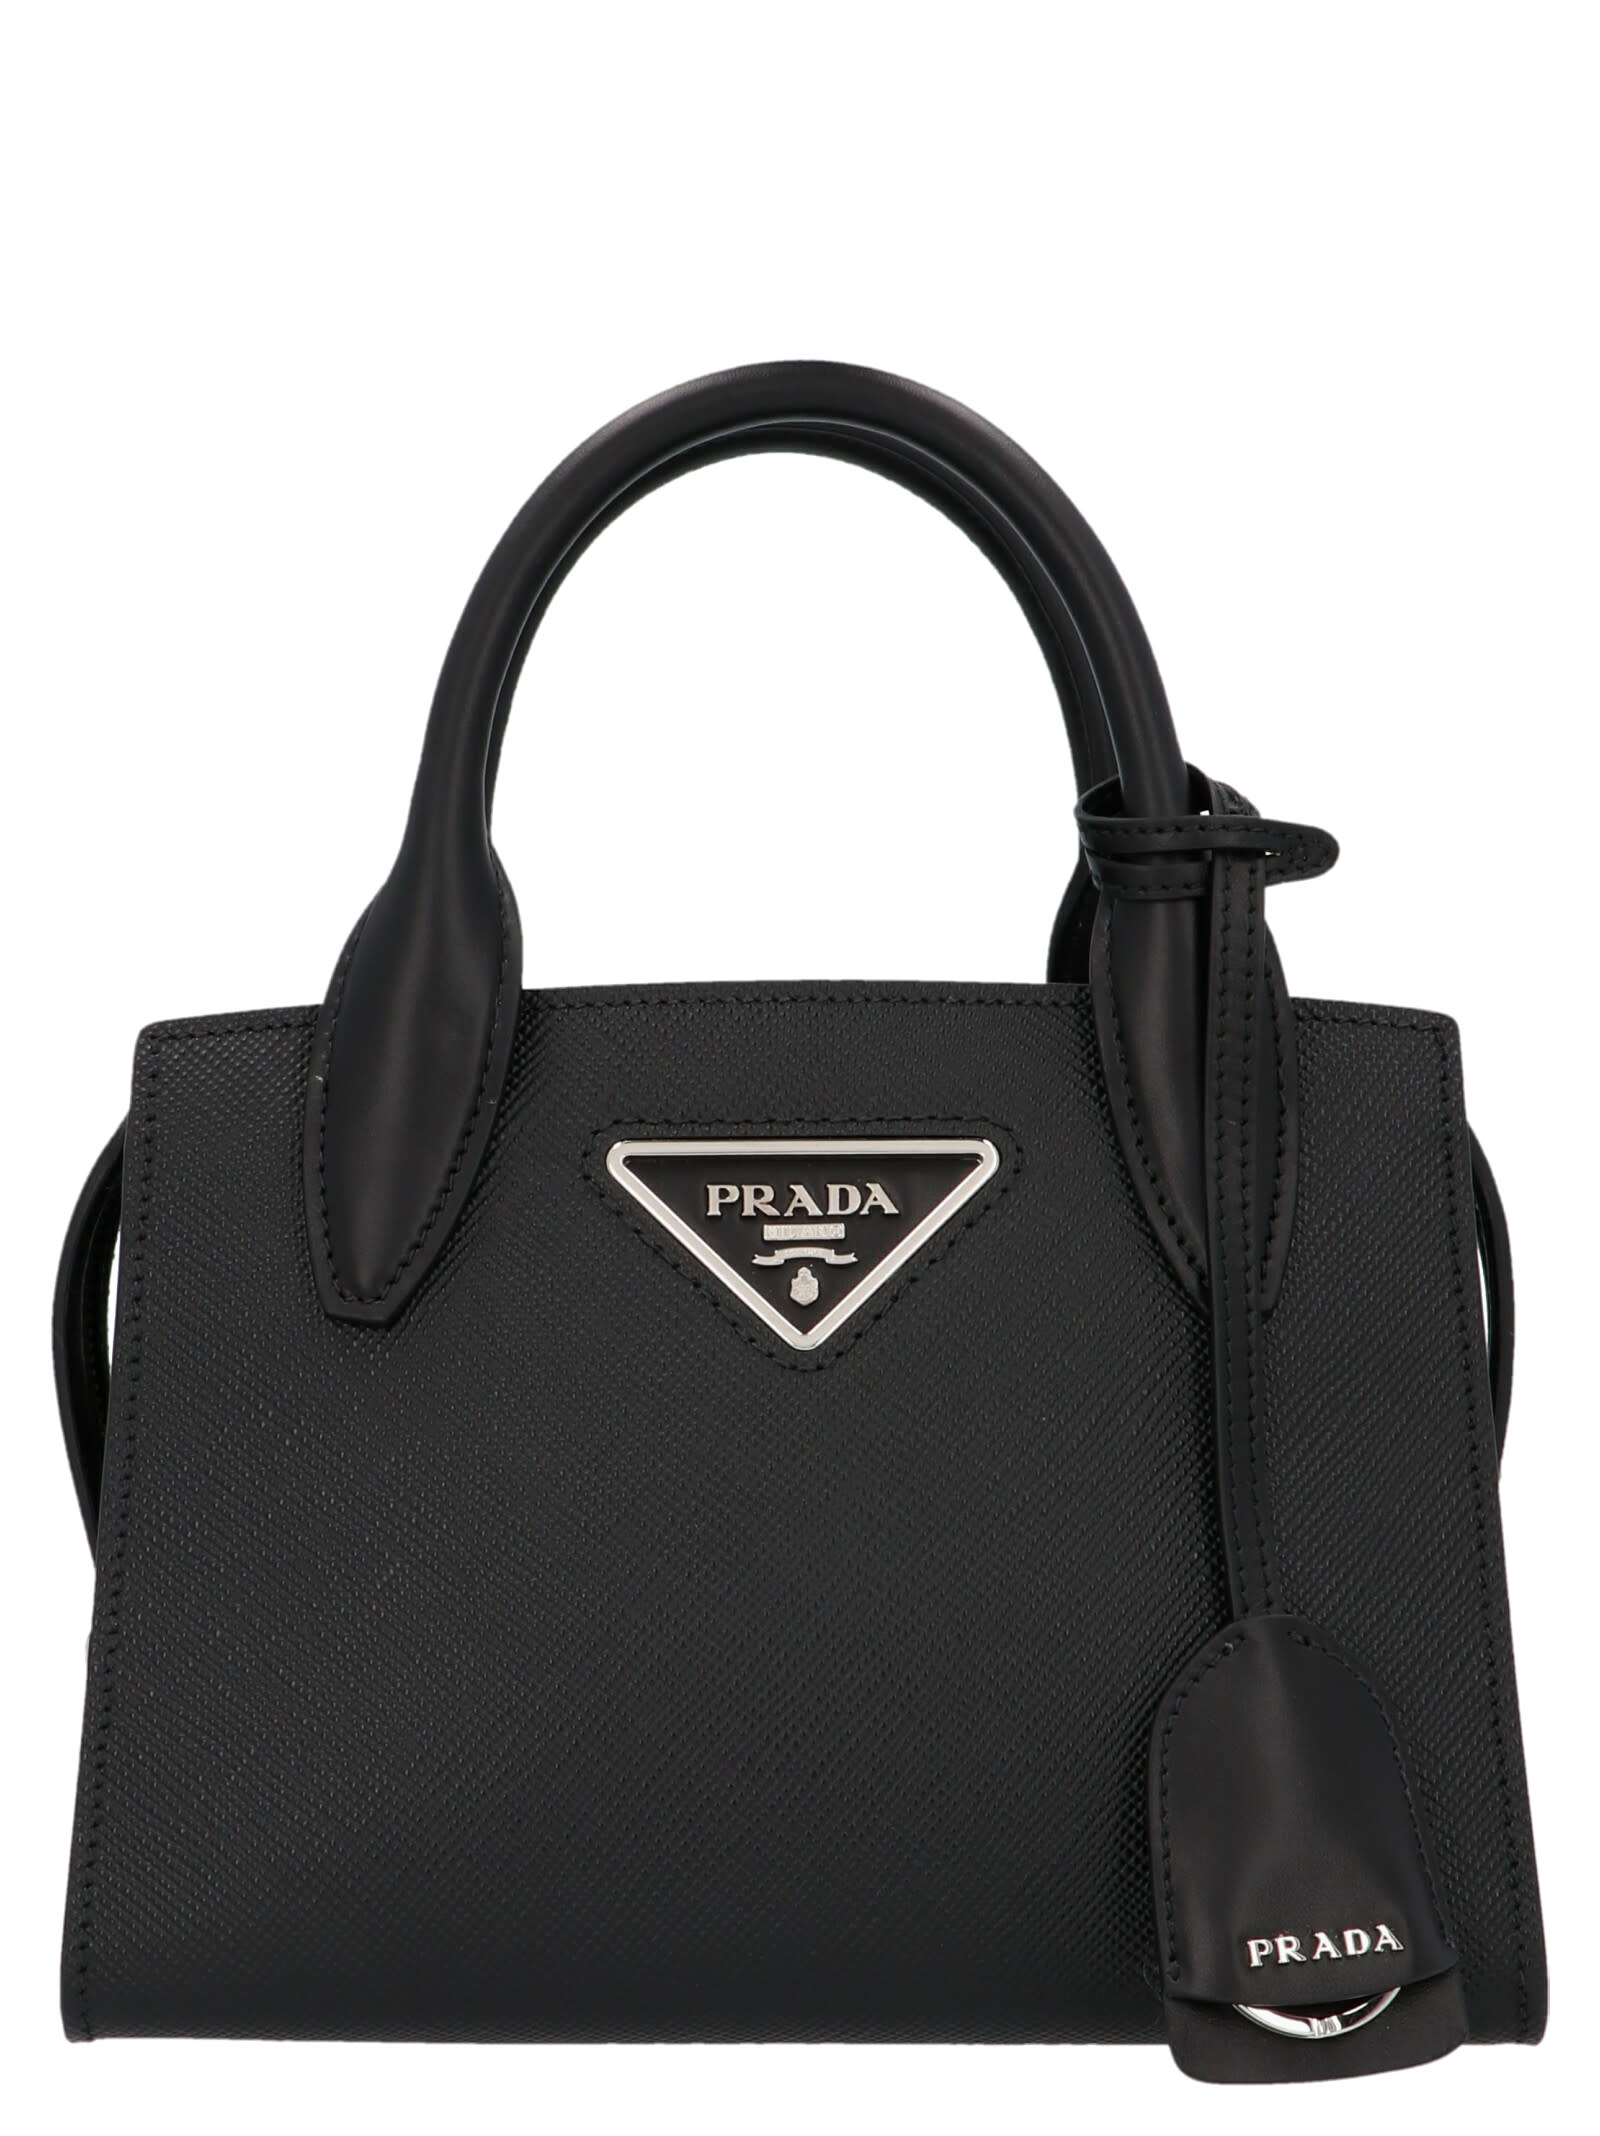 Prada MONOCHROME BAG